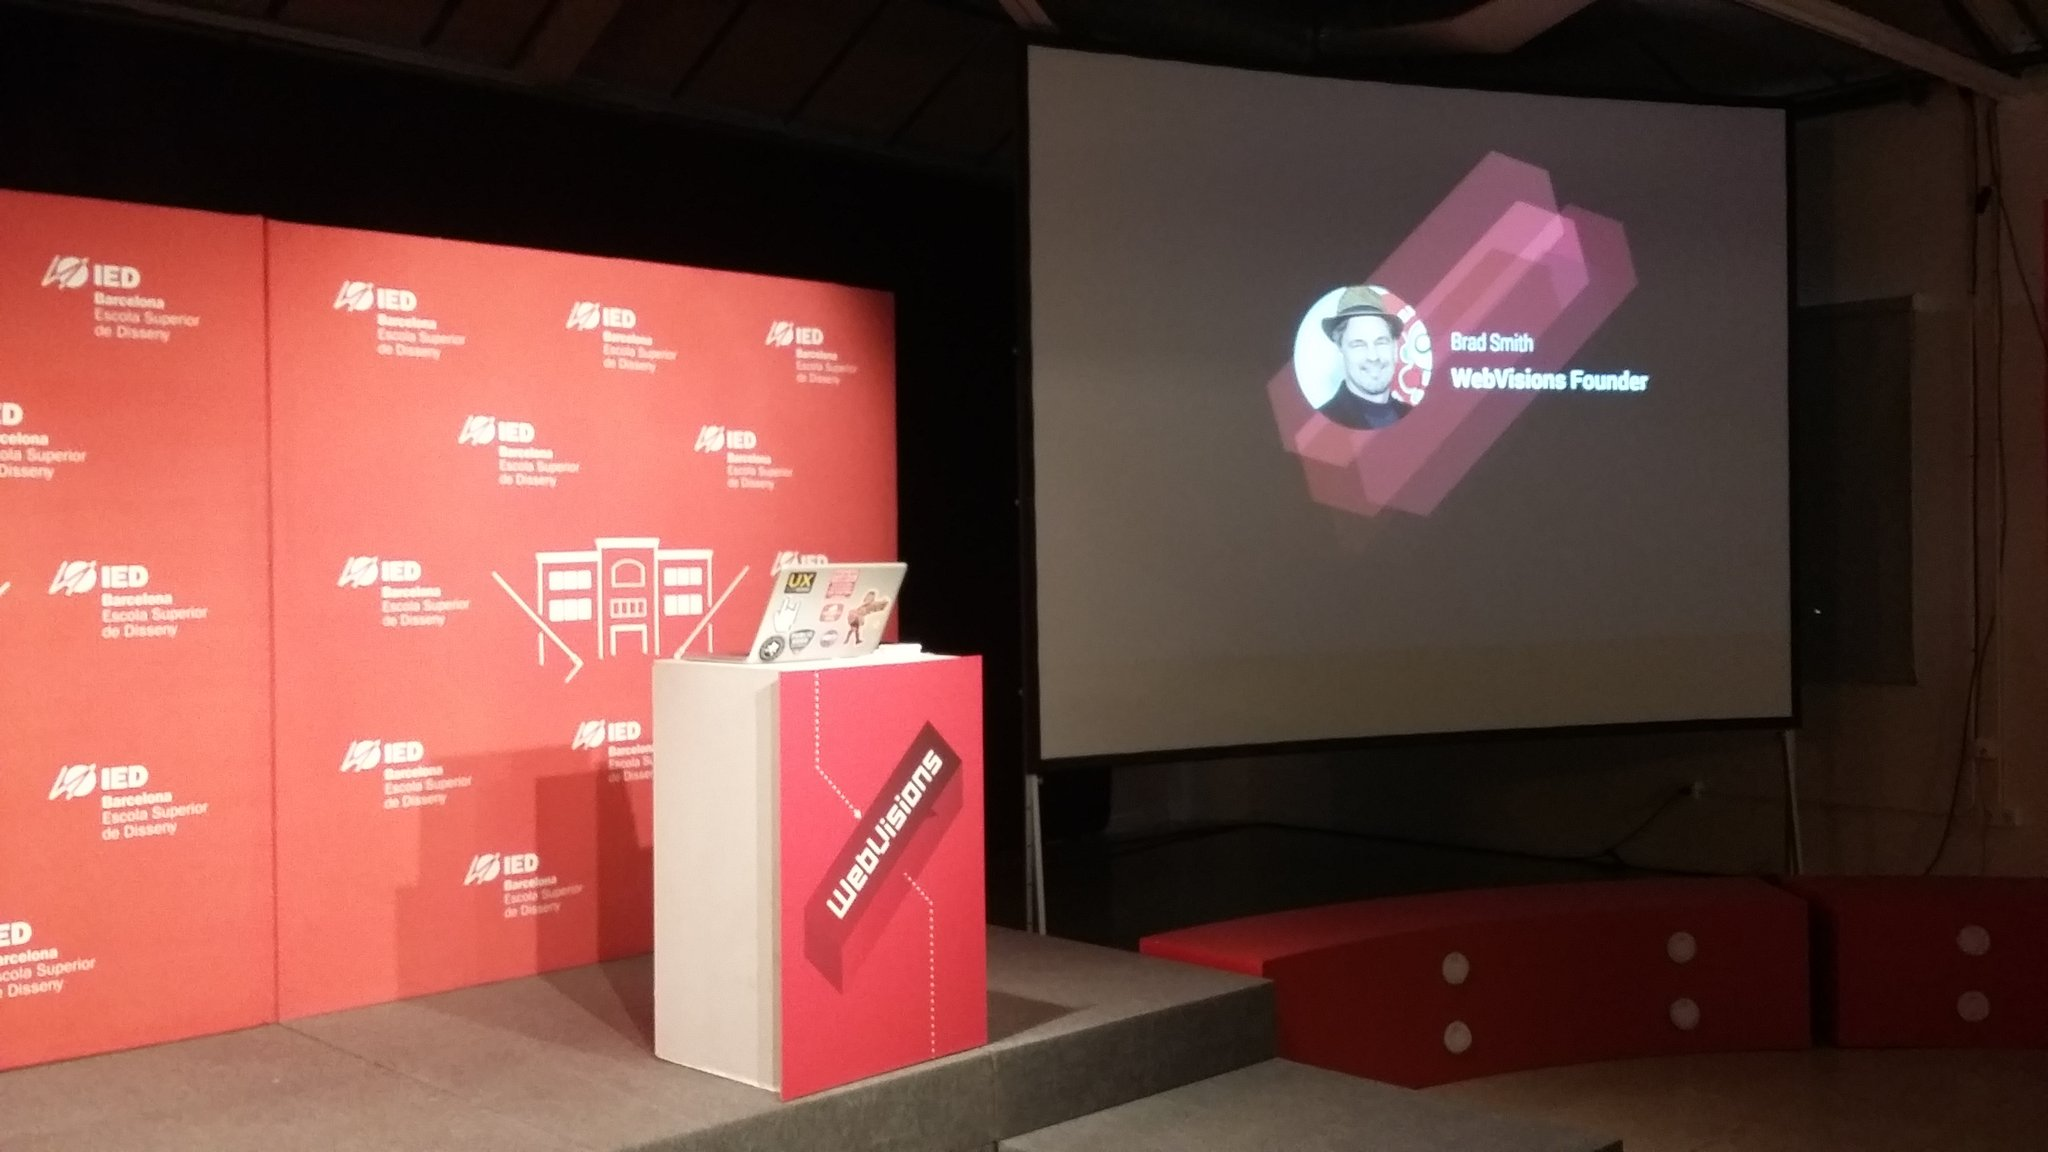 Ready to start! @webvisions Barcelona at @iedbarcelona #GoodDesignisGoodBusiness #design #communication https://t.co/hu4FMJ6Zwp